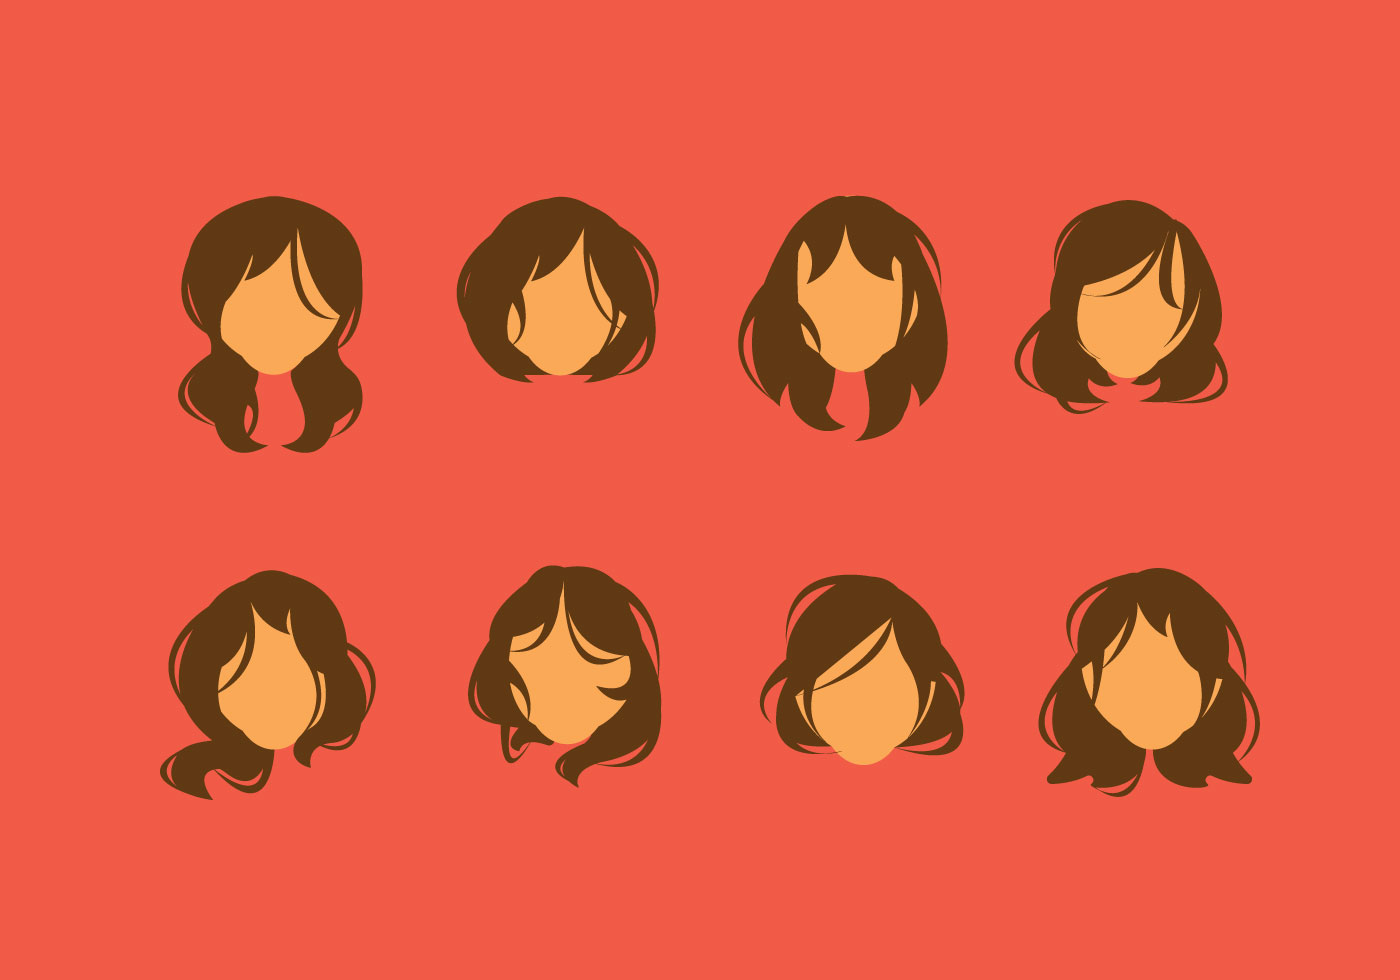 Hairstyle Vector: Curly Hair Free Vector Art